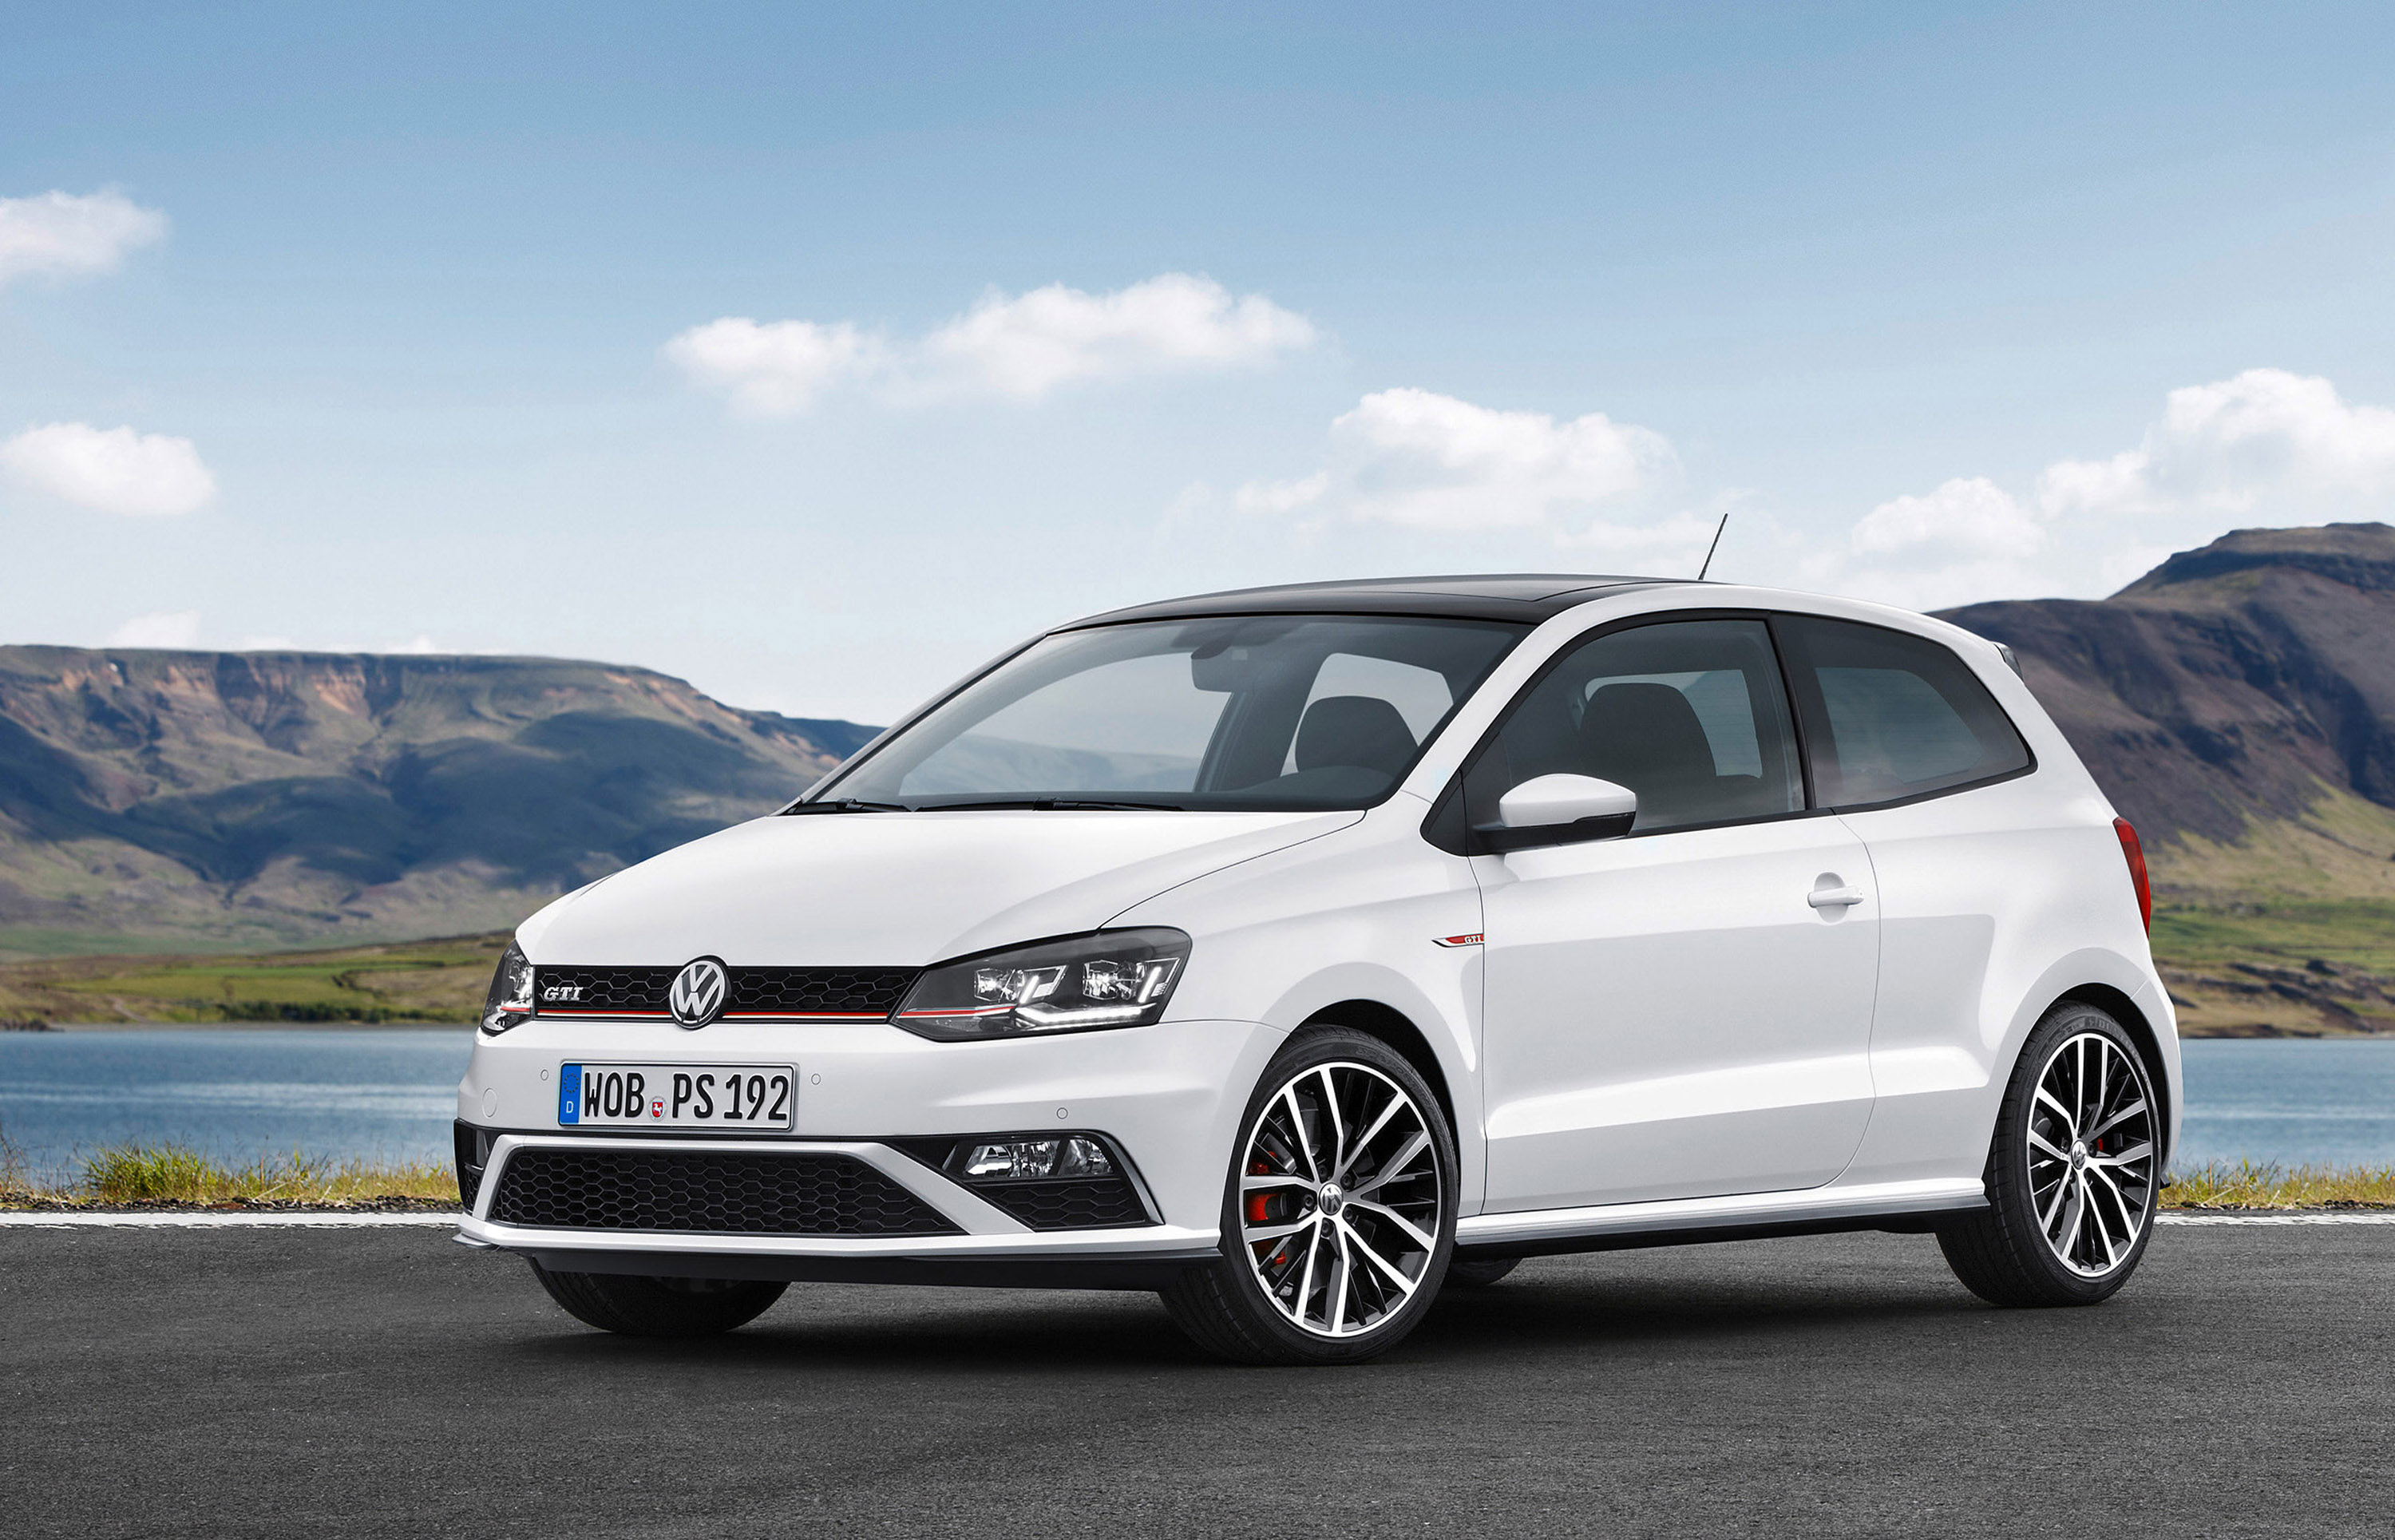 2015 volkswagen polo gti facelift is almost as good as the polo r wrc. Black Bedroom Furniture Sets. Home Design Ideas